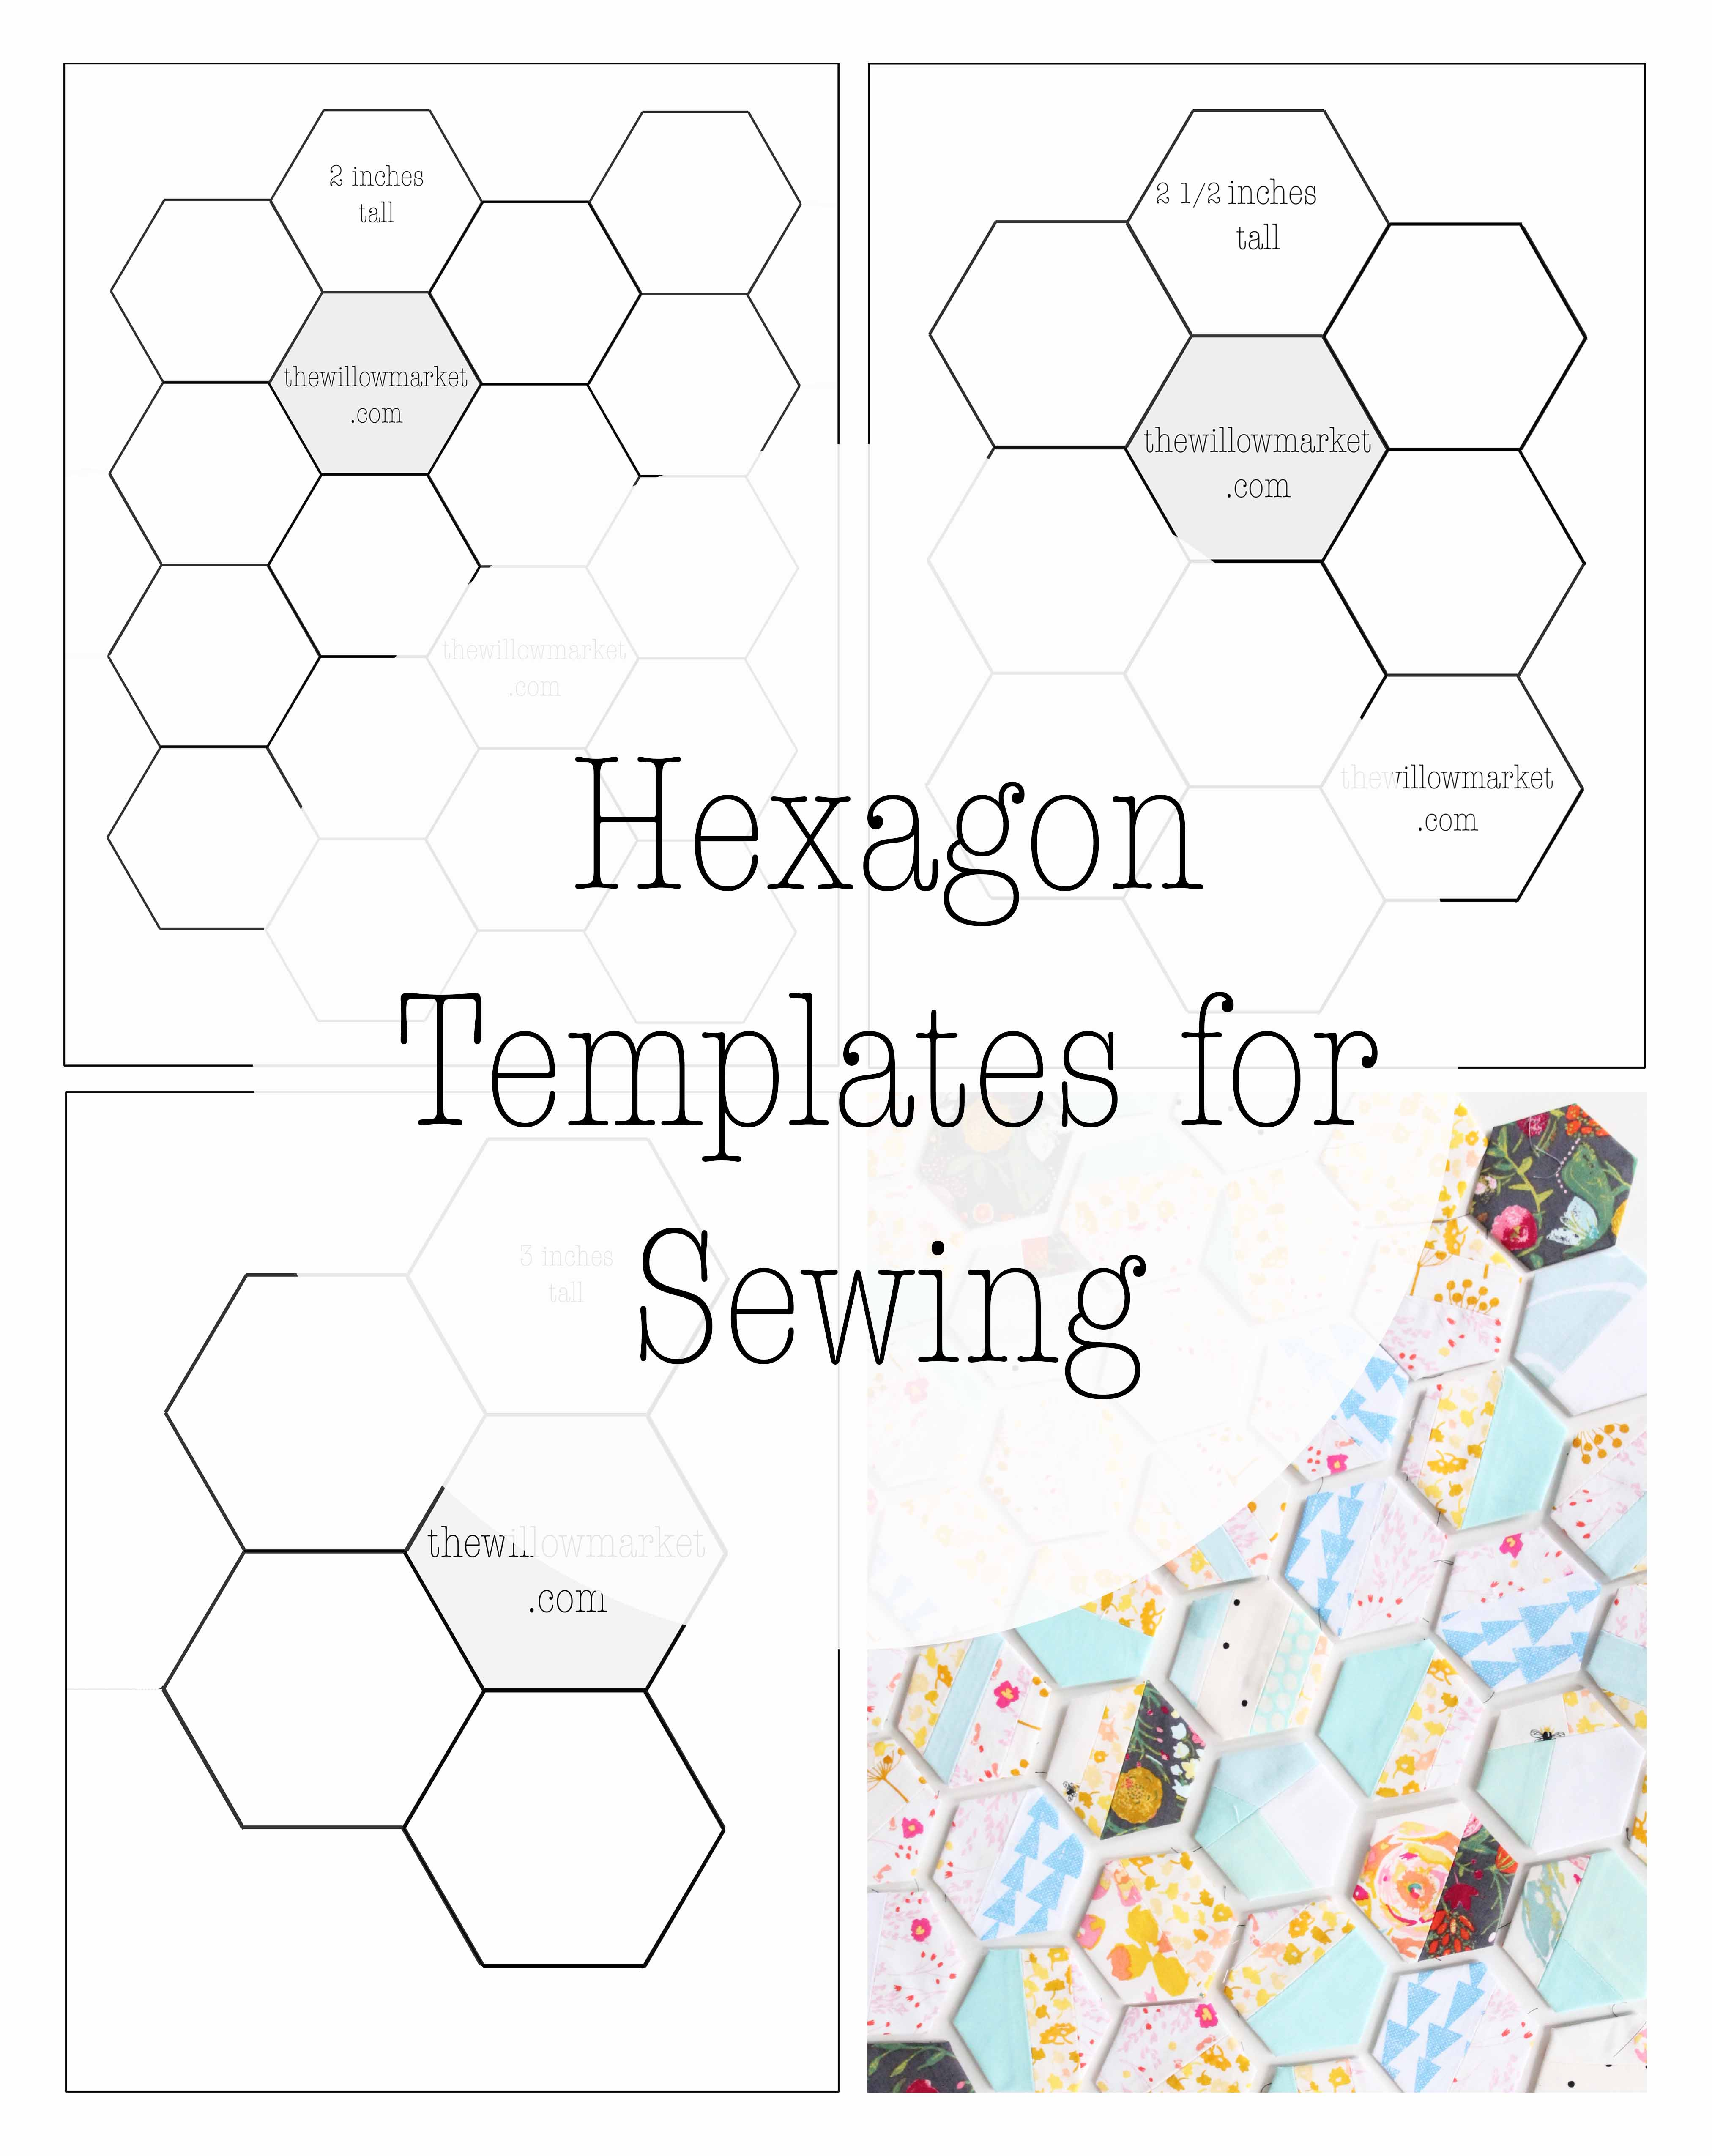 image relating to Printable Hexagon Template titled Hexagon Templates for Sewing a Hexie Quilt 2 Inch, 2 1/2